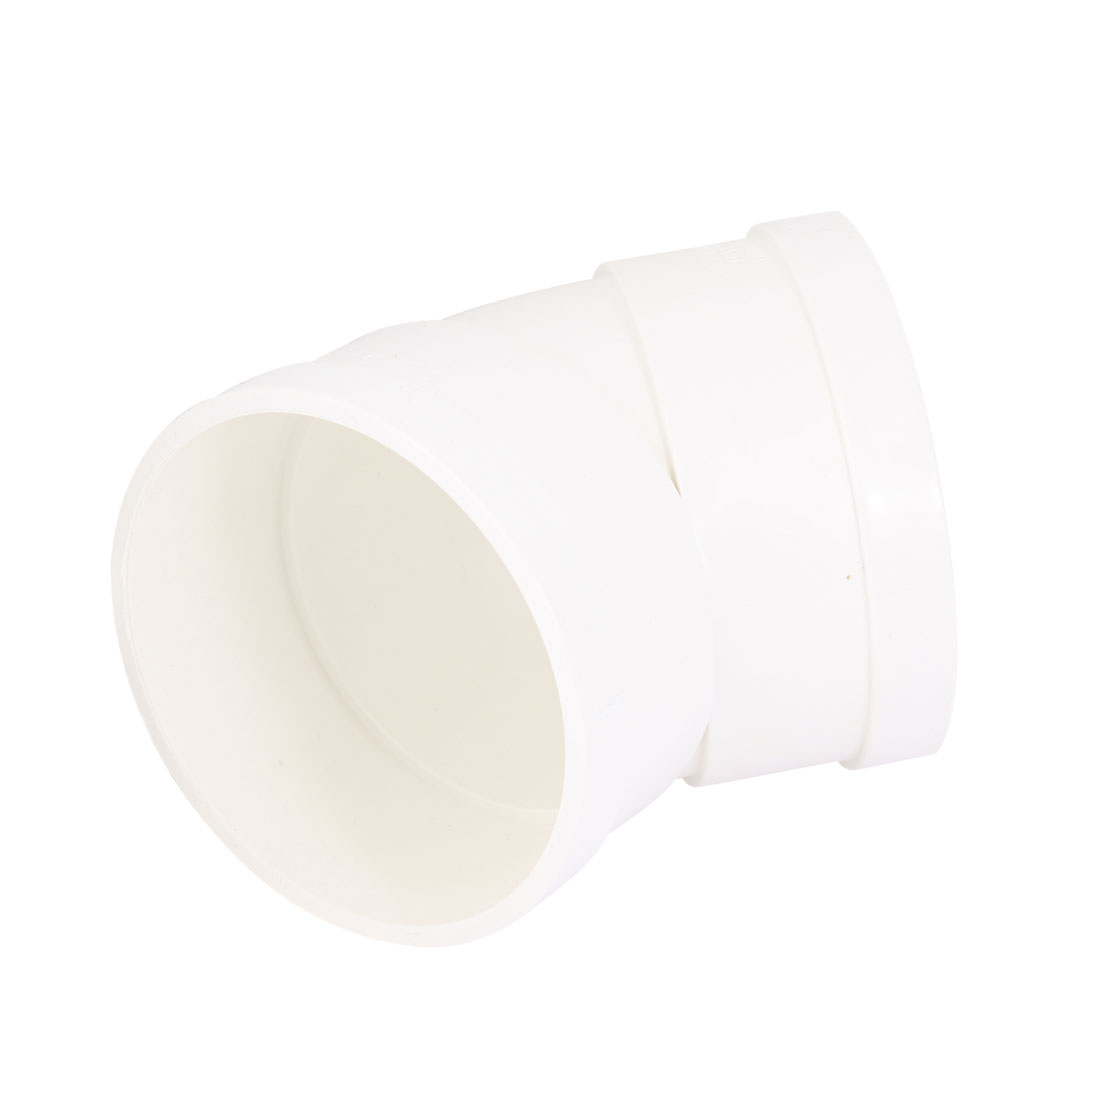 2 Pcs White PVC 110mm Inner Dia 45 Degree Design Pipe Tube Connector